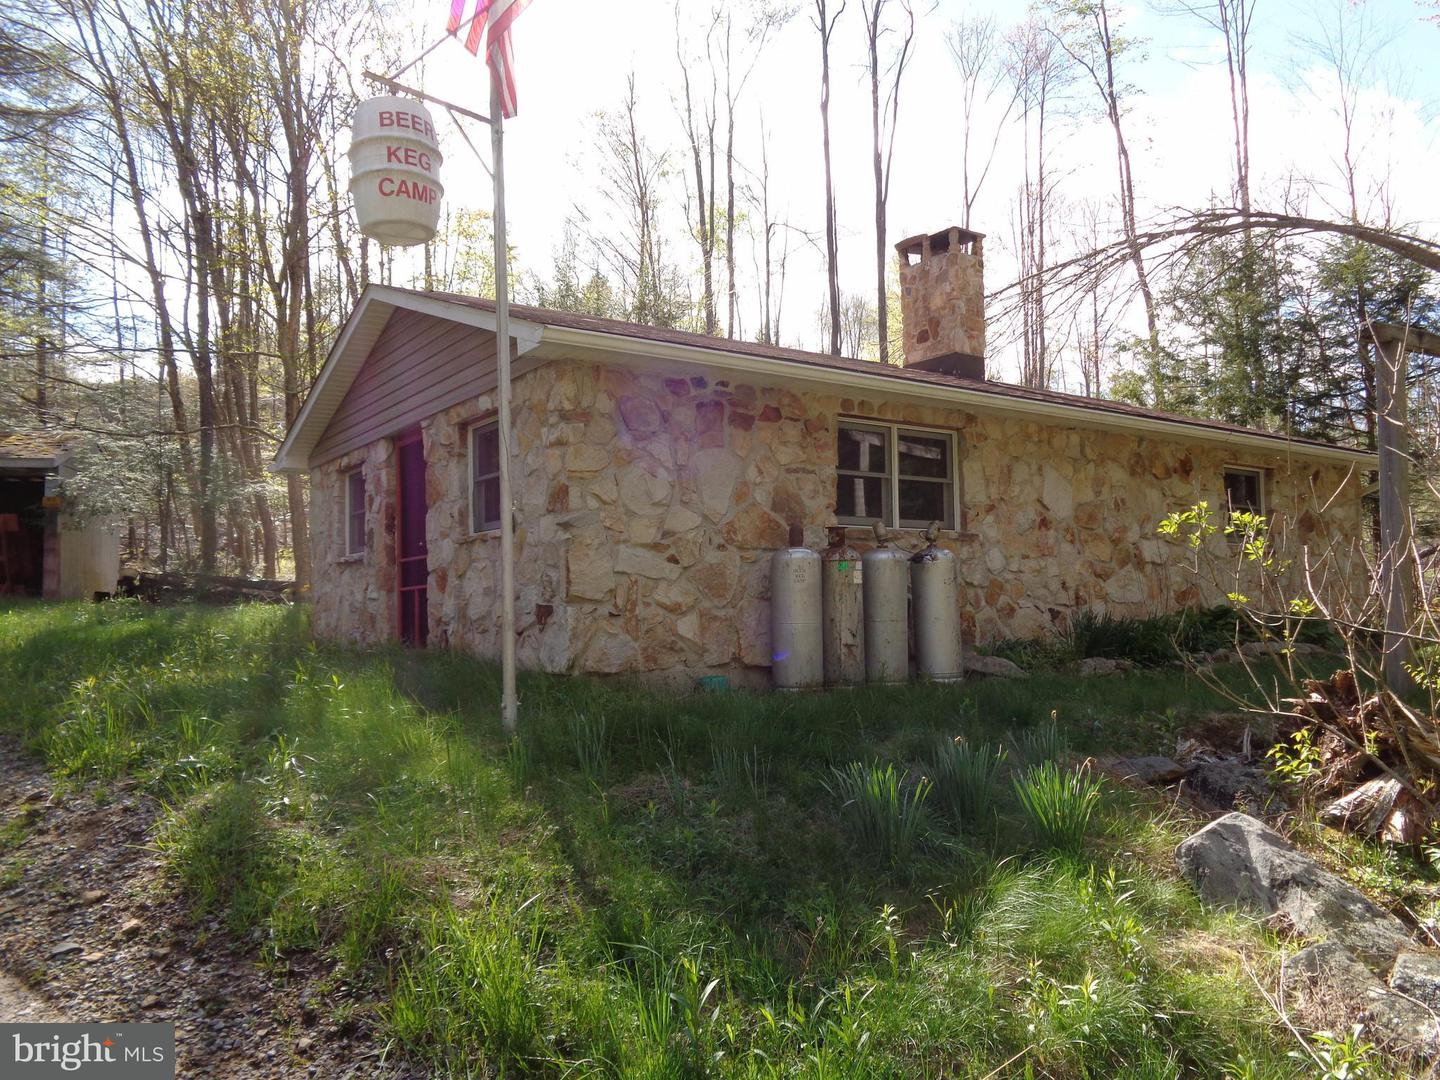 Land for Sale at Unnamed Bayard, West Virginia 26707 United States